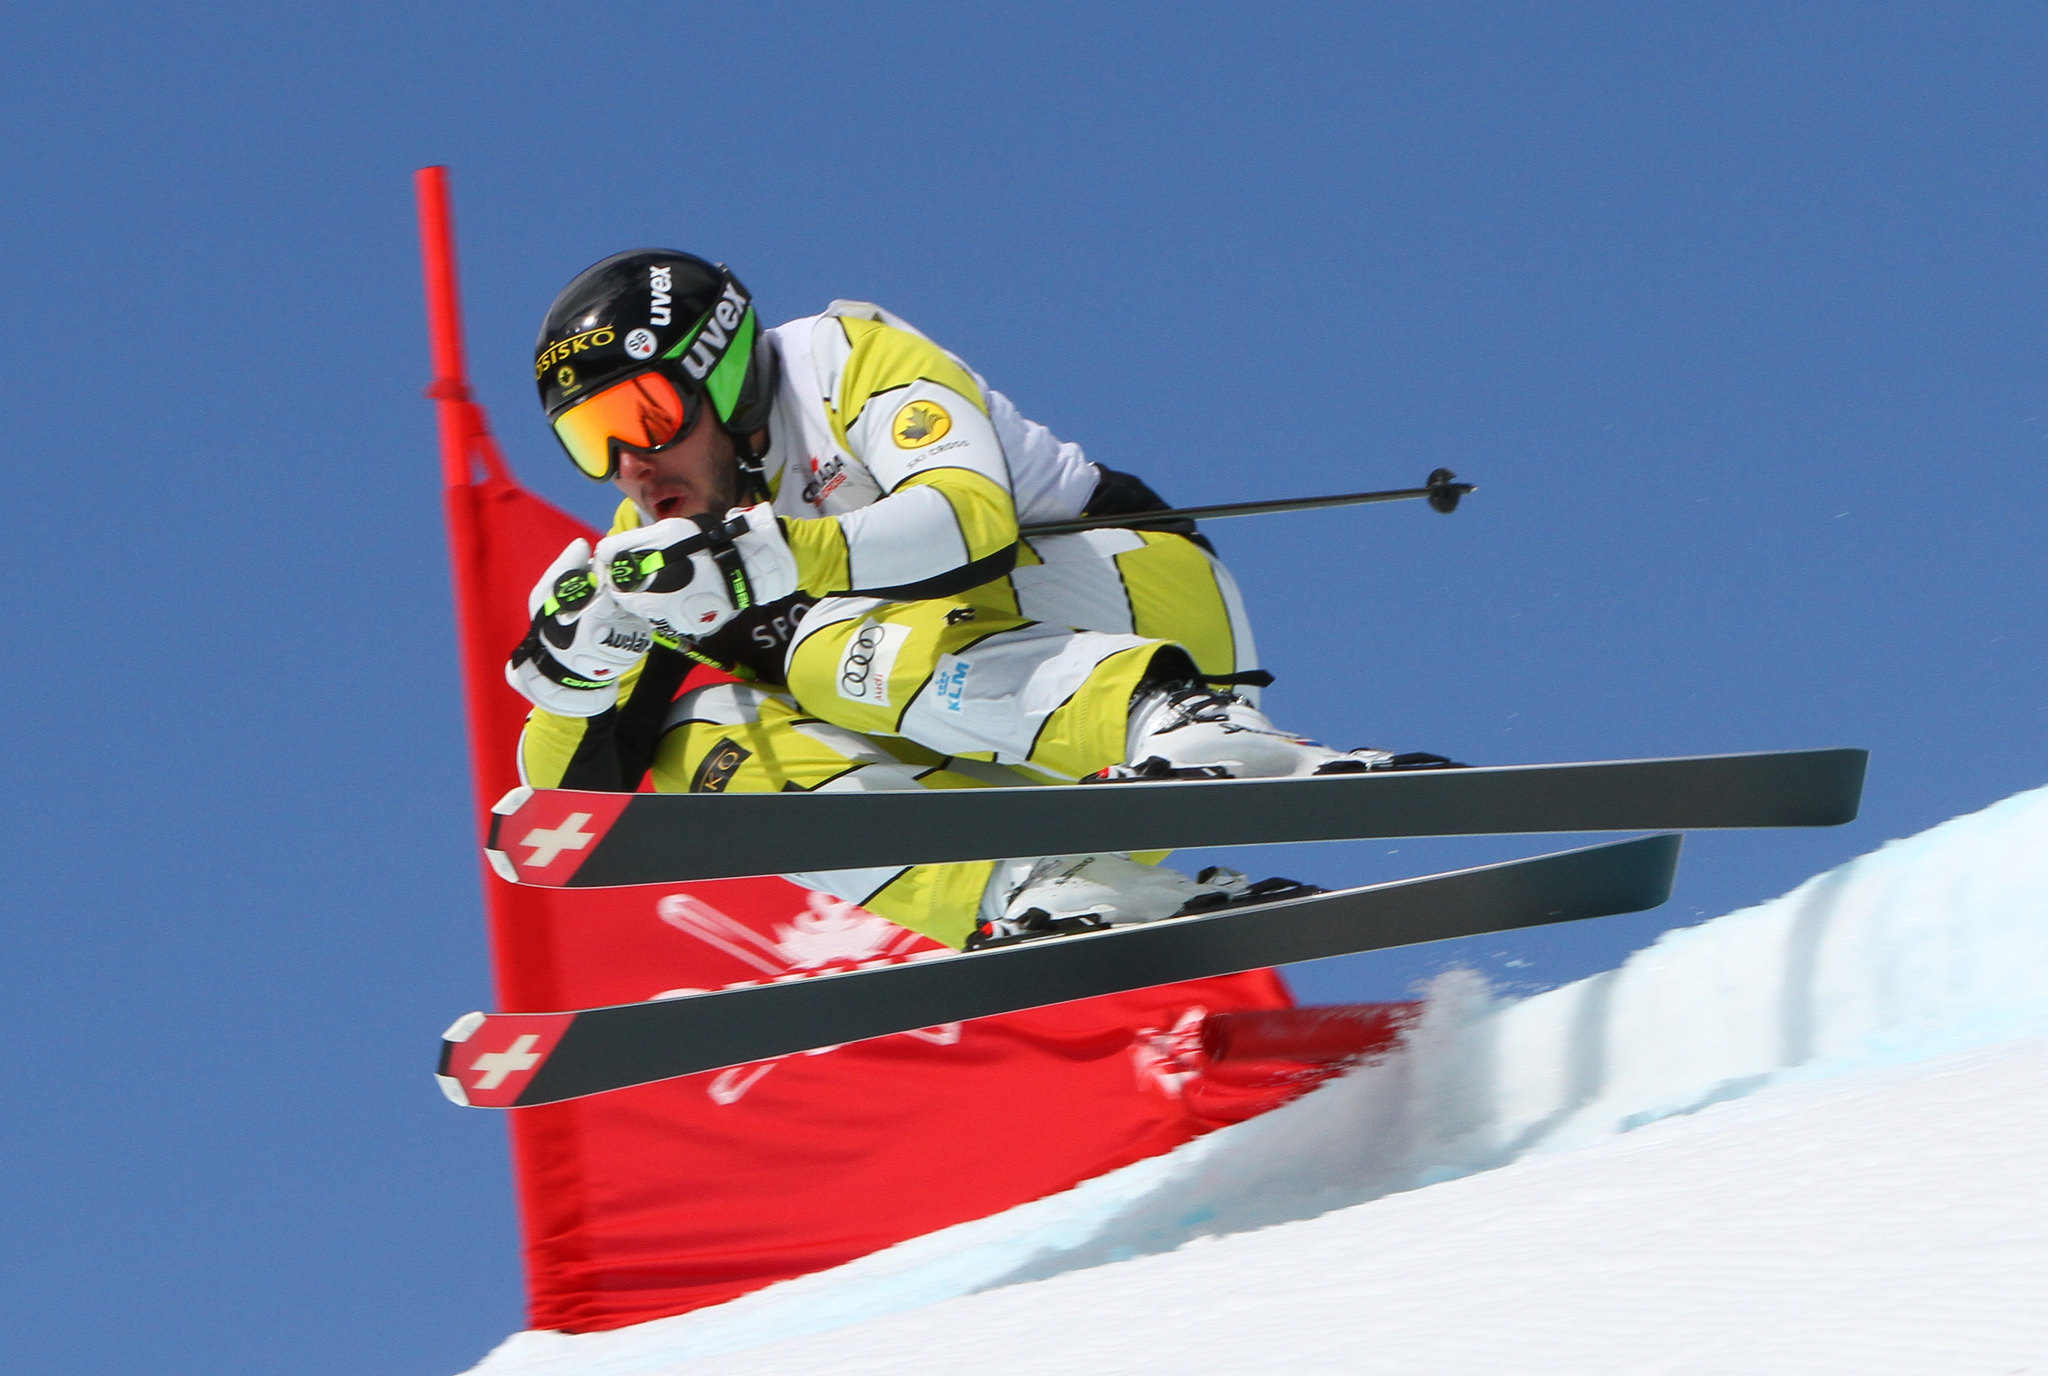 Dave Duncan takes off during the Sport Chek Ski Cross Canadian Open in Nakiska.